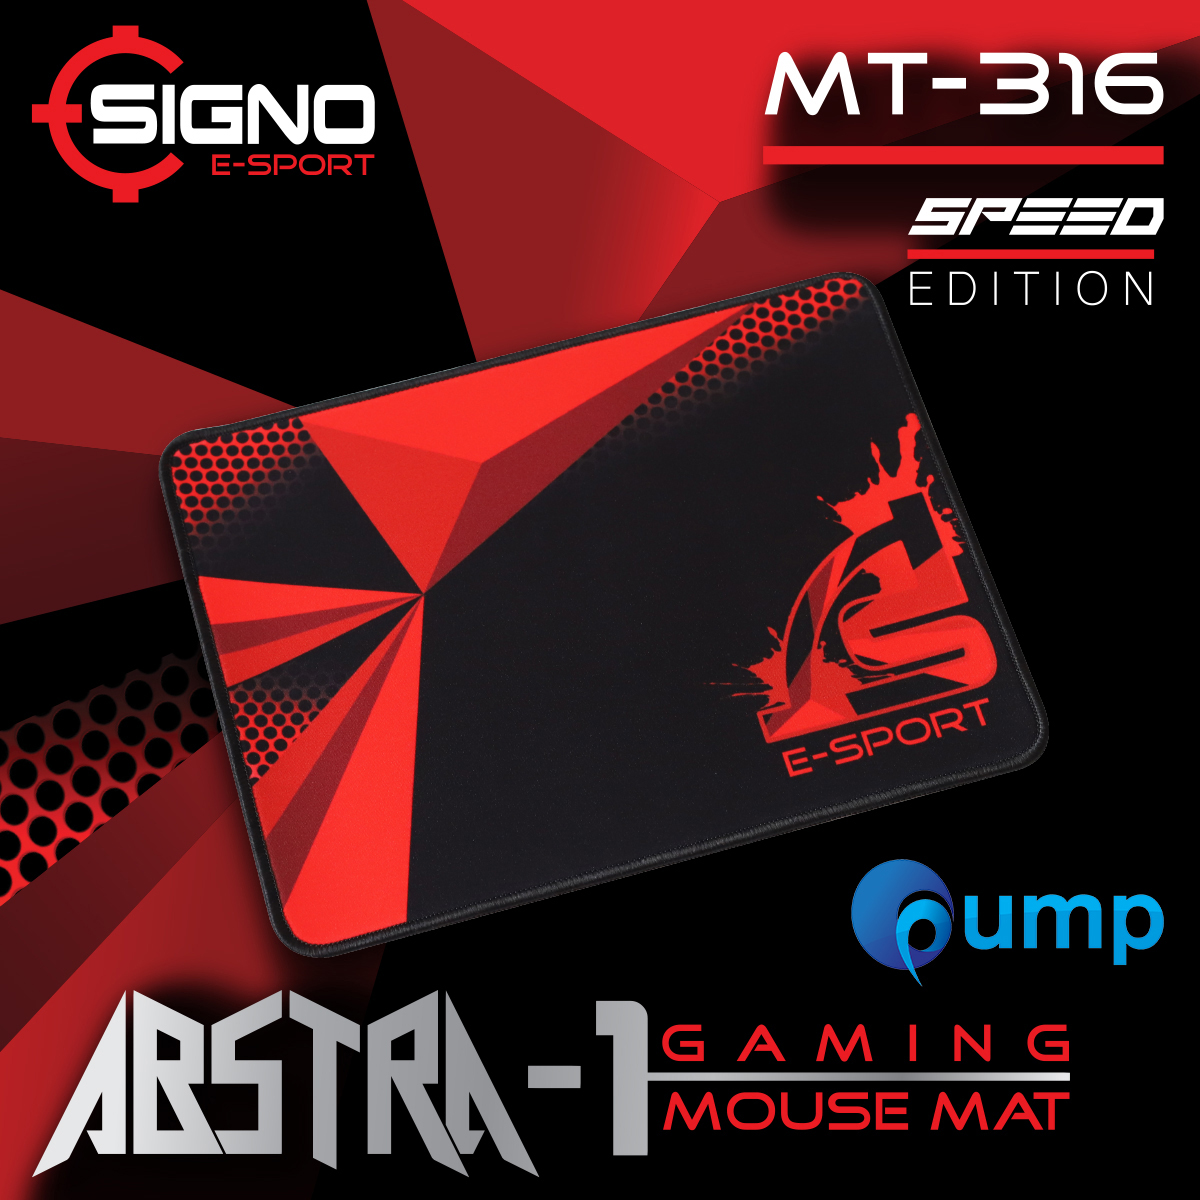 Signo E-Sport ABSTRA-1 MT-316 Gaming Mouse Mat Size M (Speed)